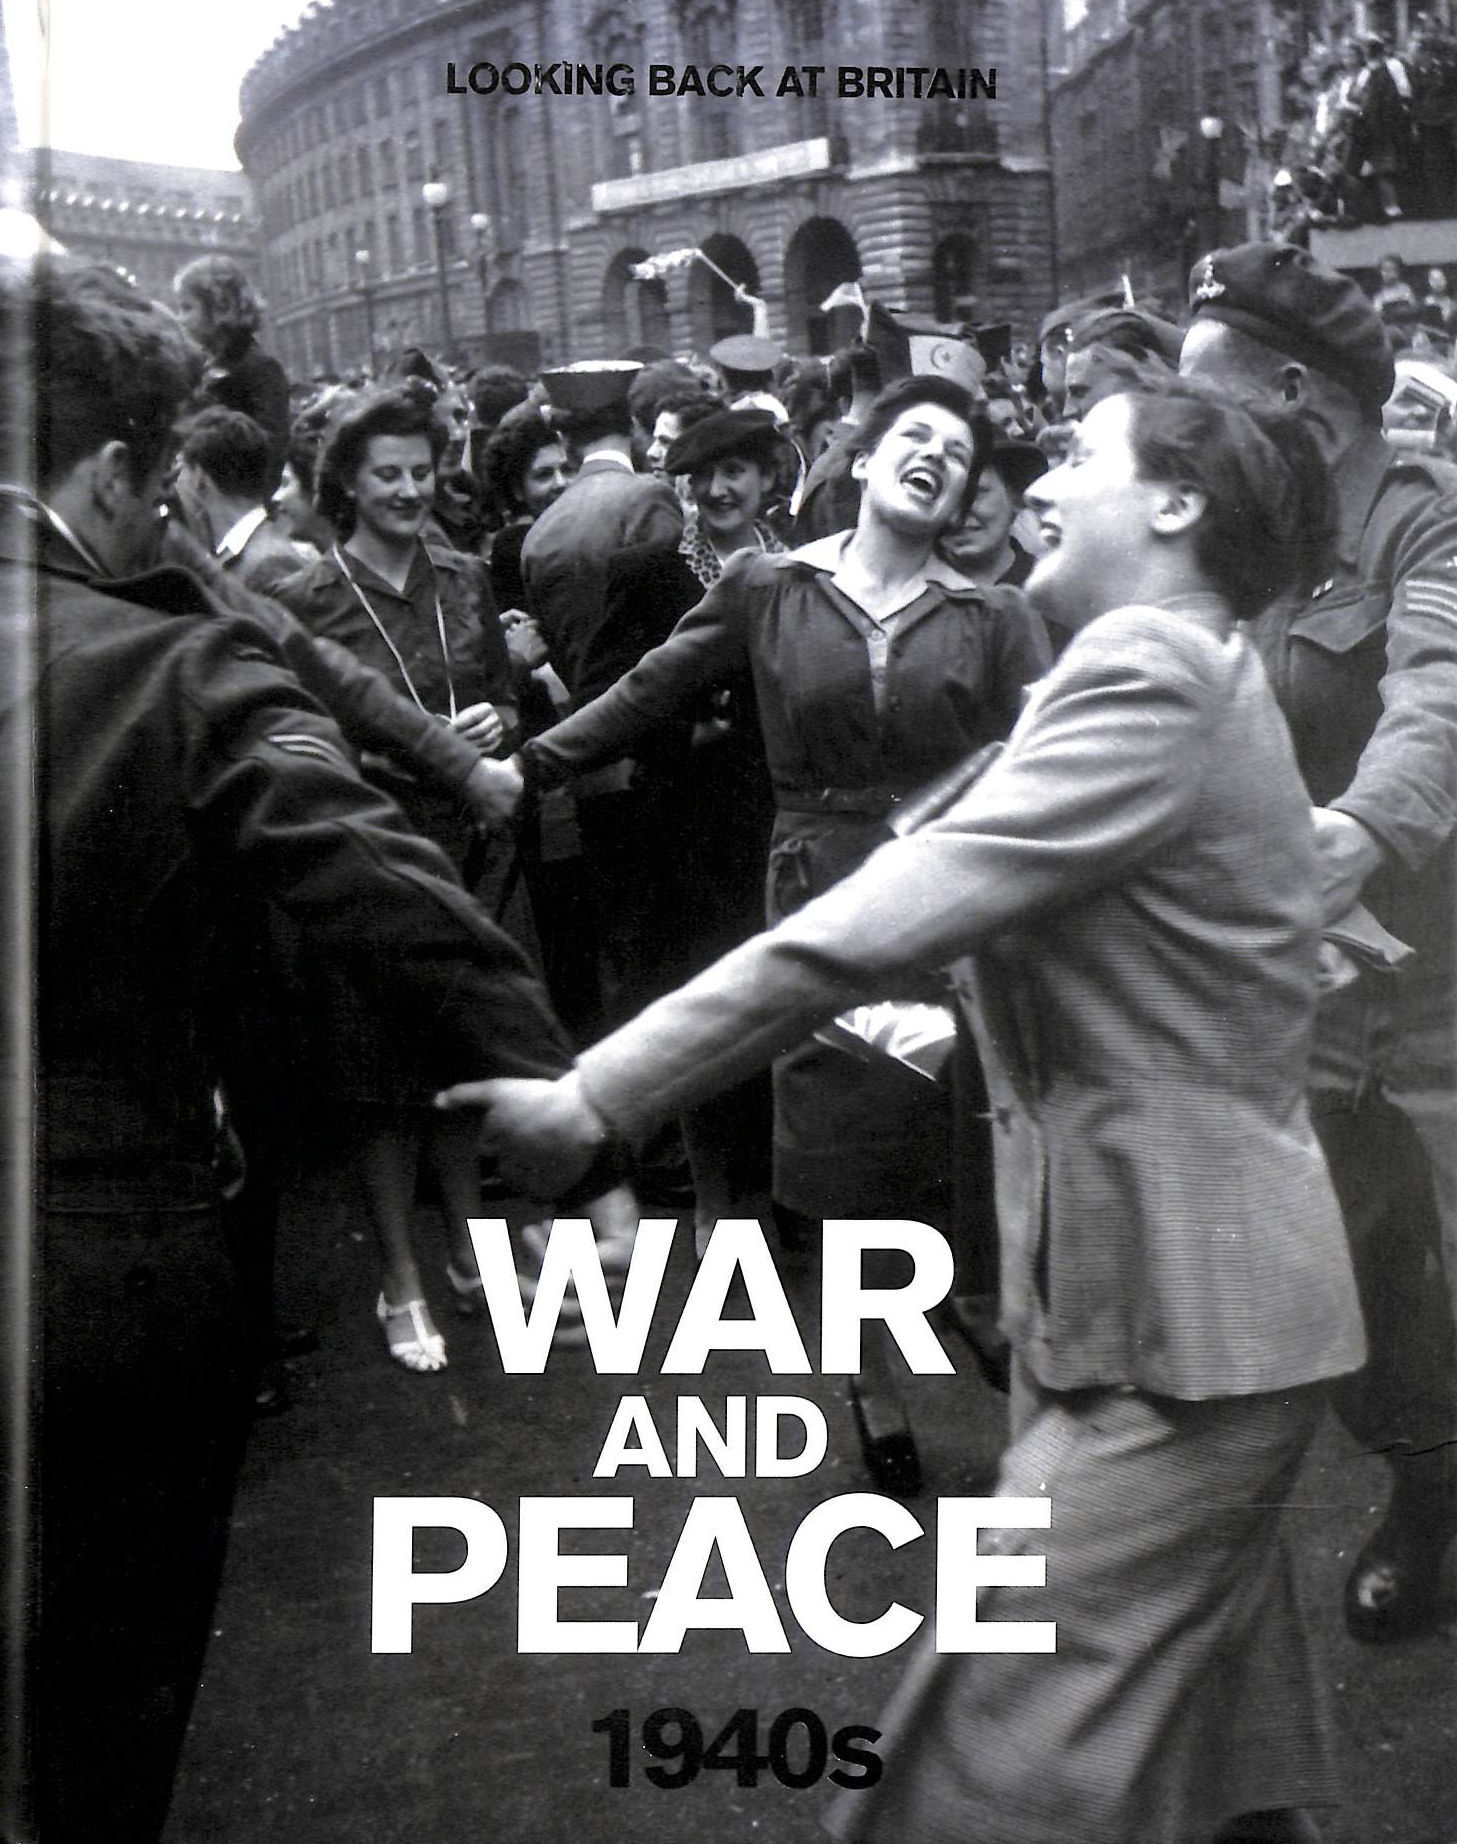 Image for War and Peace - 1940s (Looking Back at Britain)